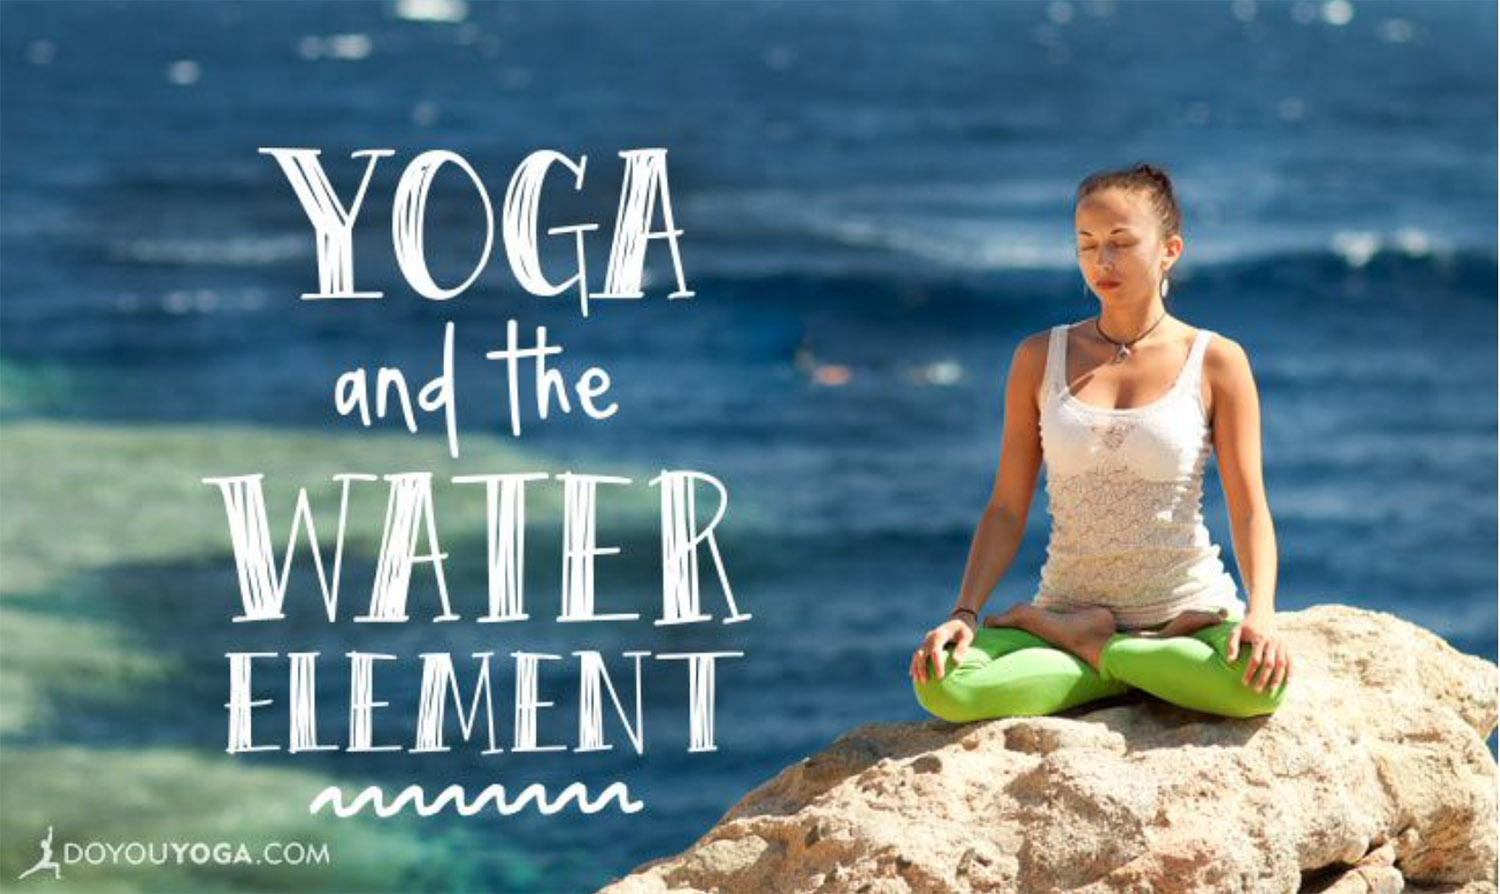 Yoga and Water